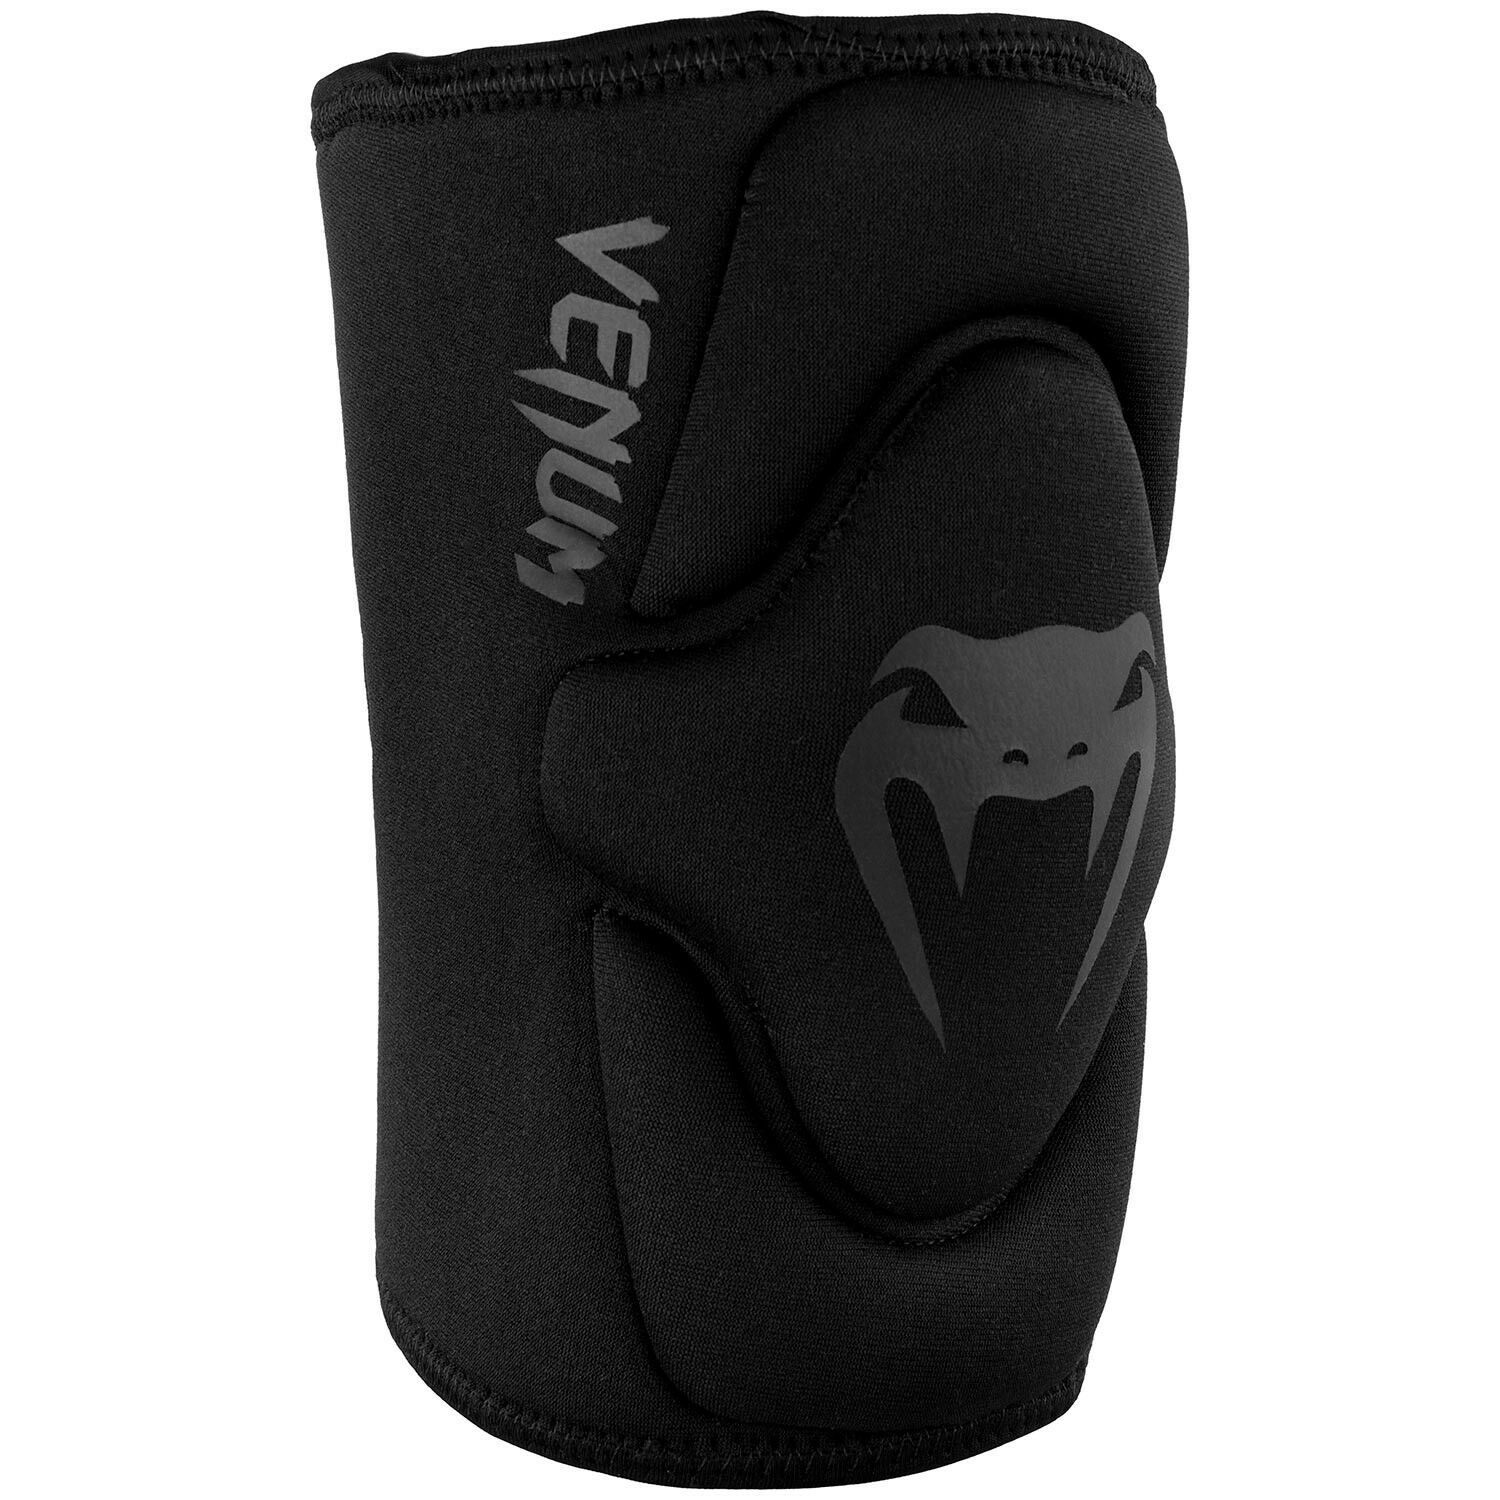 Venum MMA BJJ Knee Pads Kontact Martial Arts Support Injury Rehab Predection